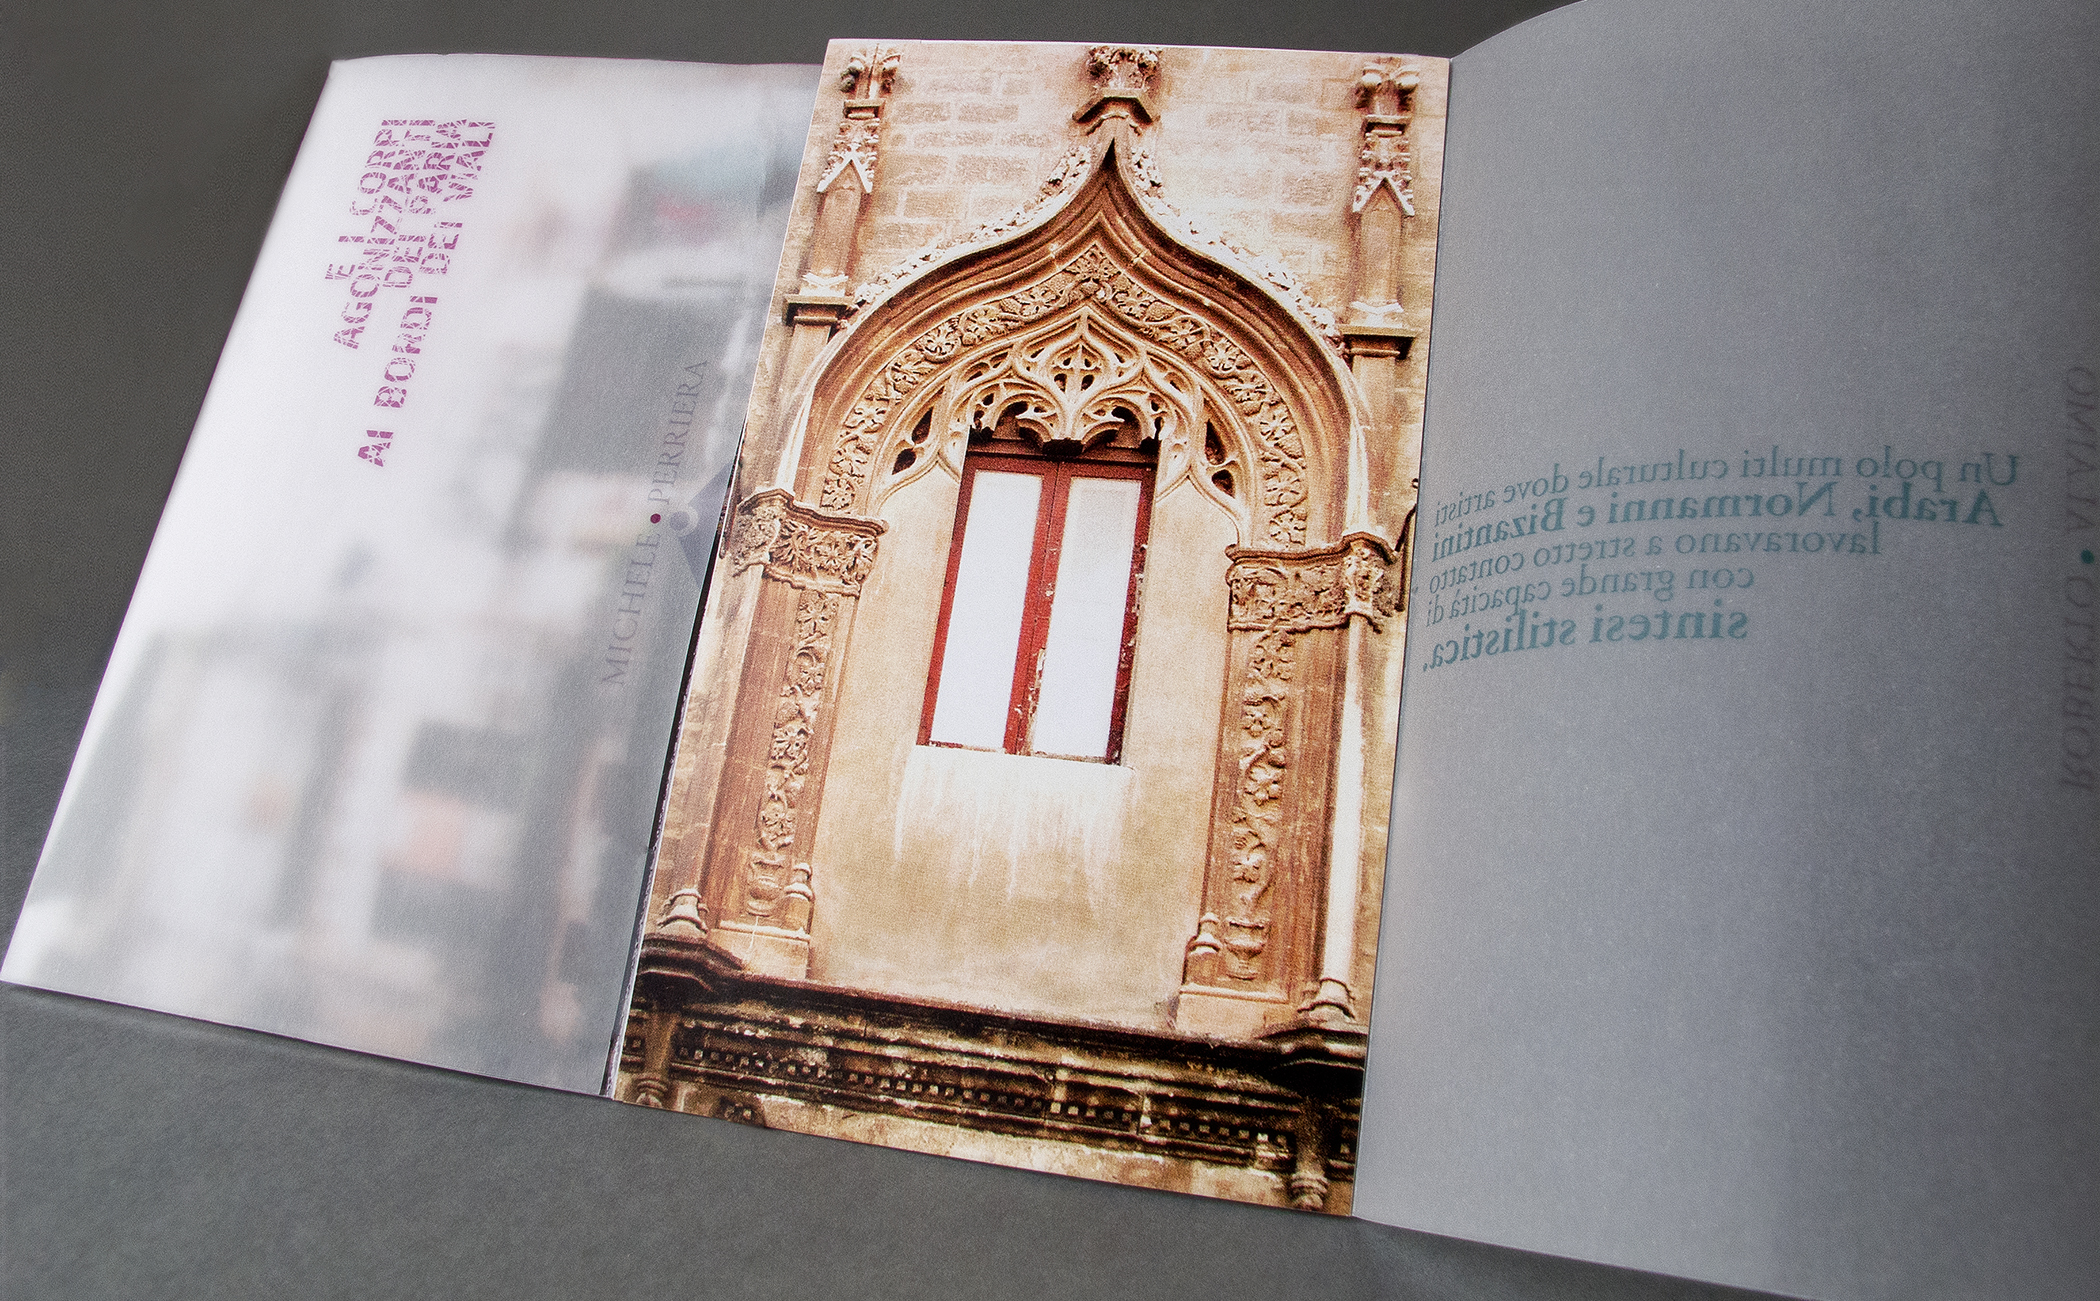 Palermo,Postcard, Concept, Contrasts, Stratifications,Norman-Arab-Byzantine, Textual compositions